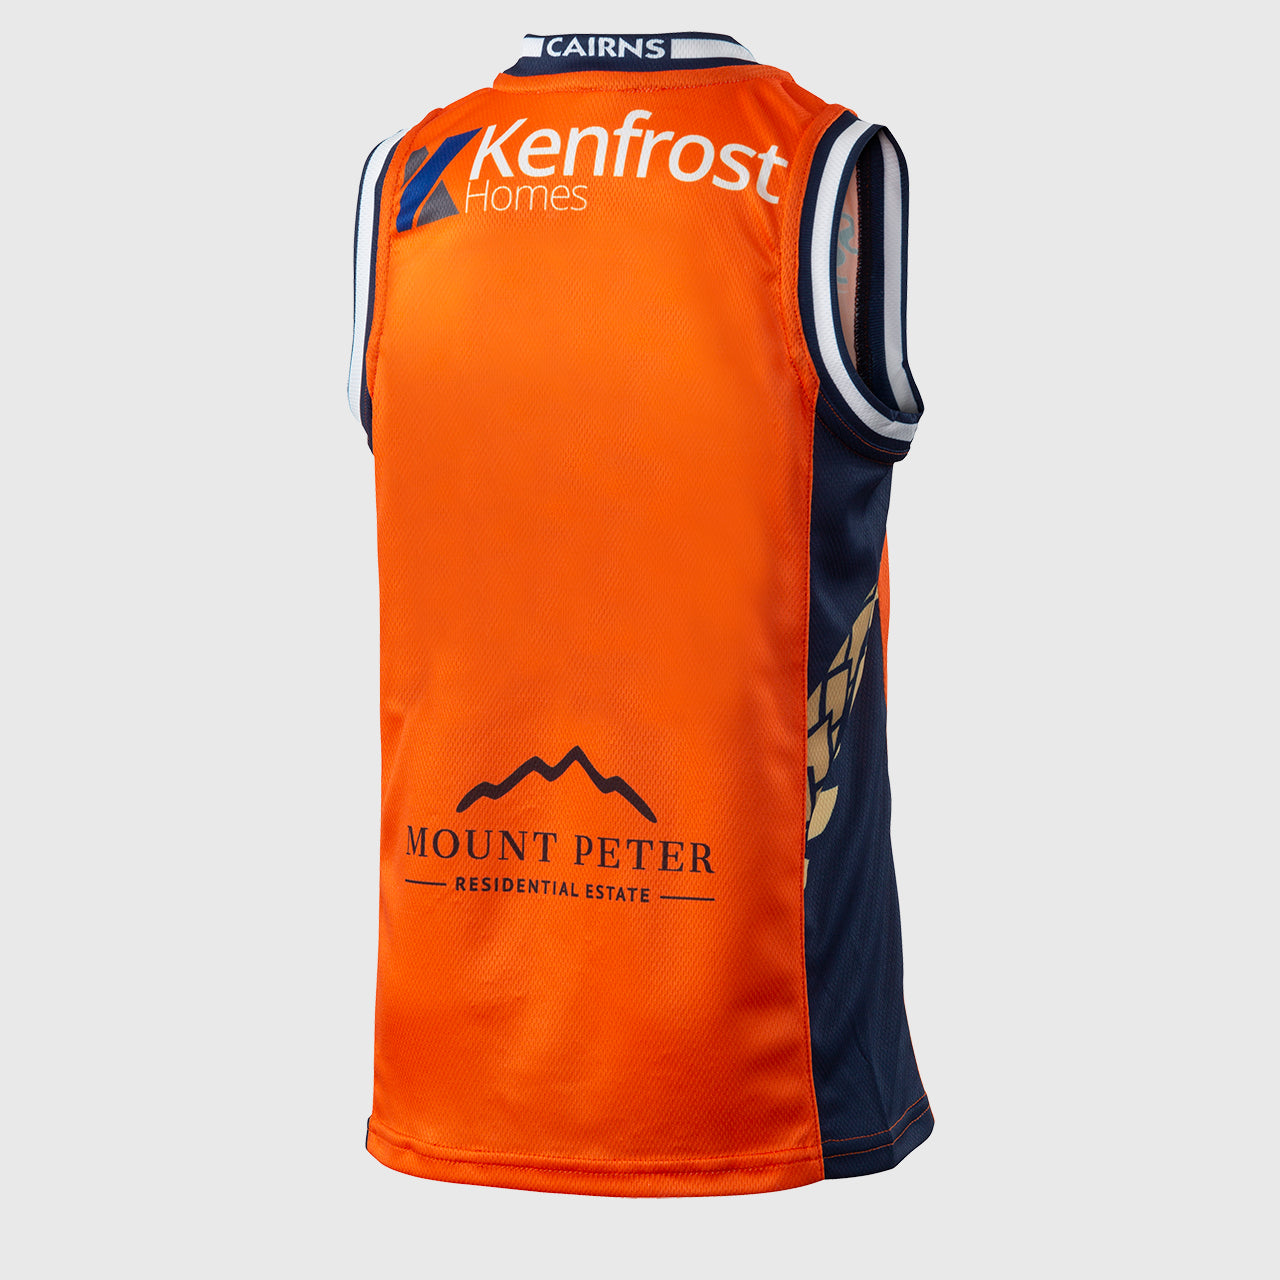 Cairns Taipans 18/19 Youth Authentic Jersey